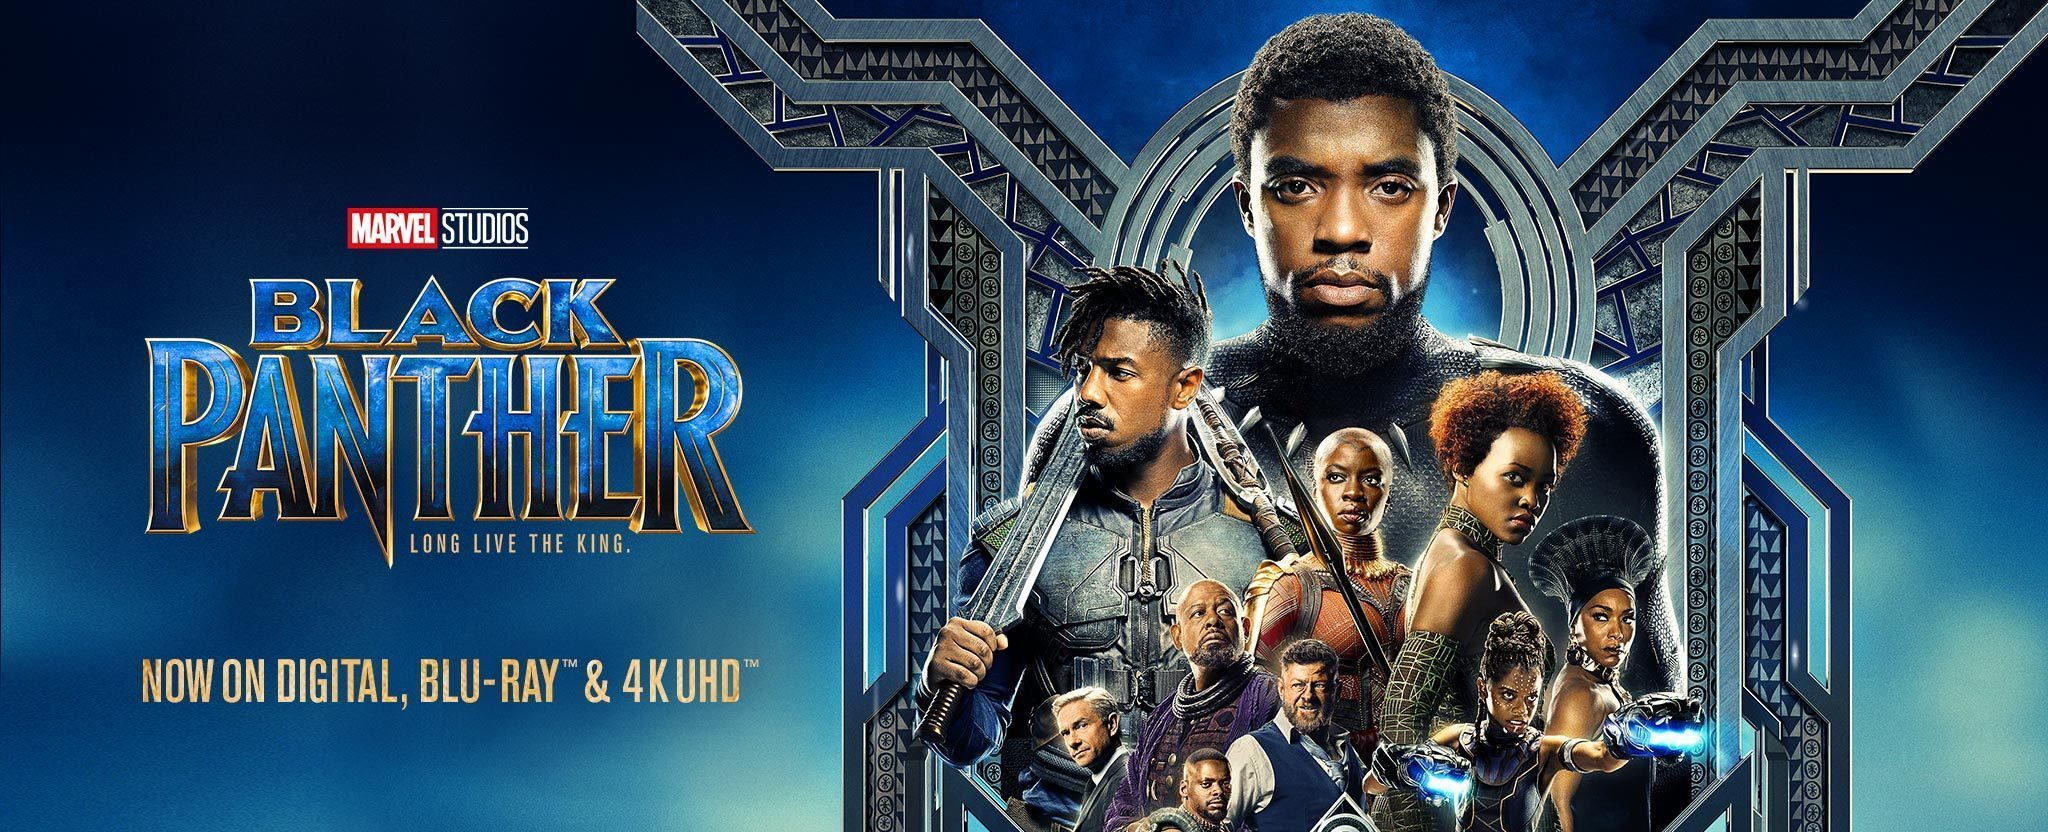 Marvel Studios Black Panther - Long Live The King - Now On Digital, Blu-ray(TM) & 4K UHD(TM)